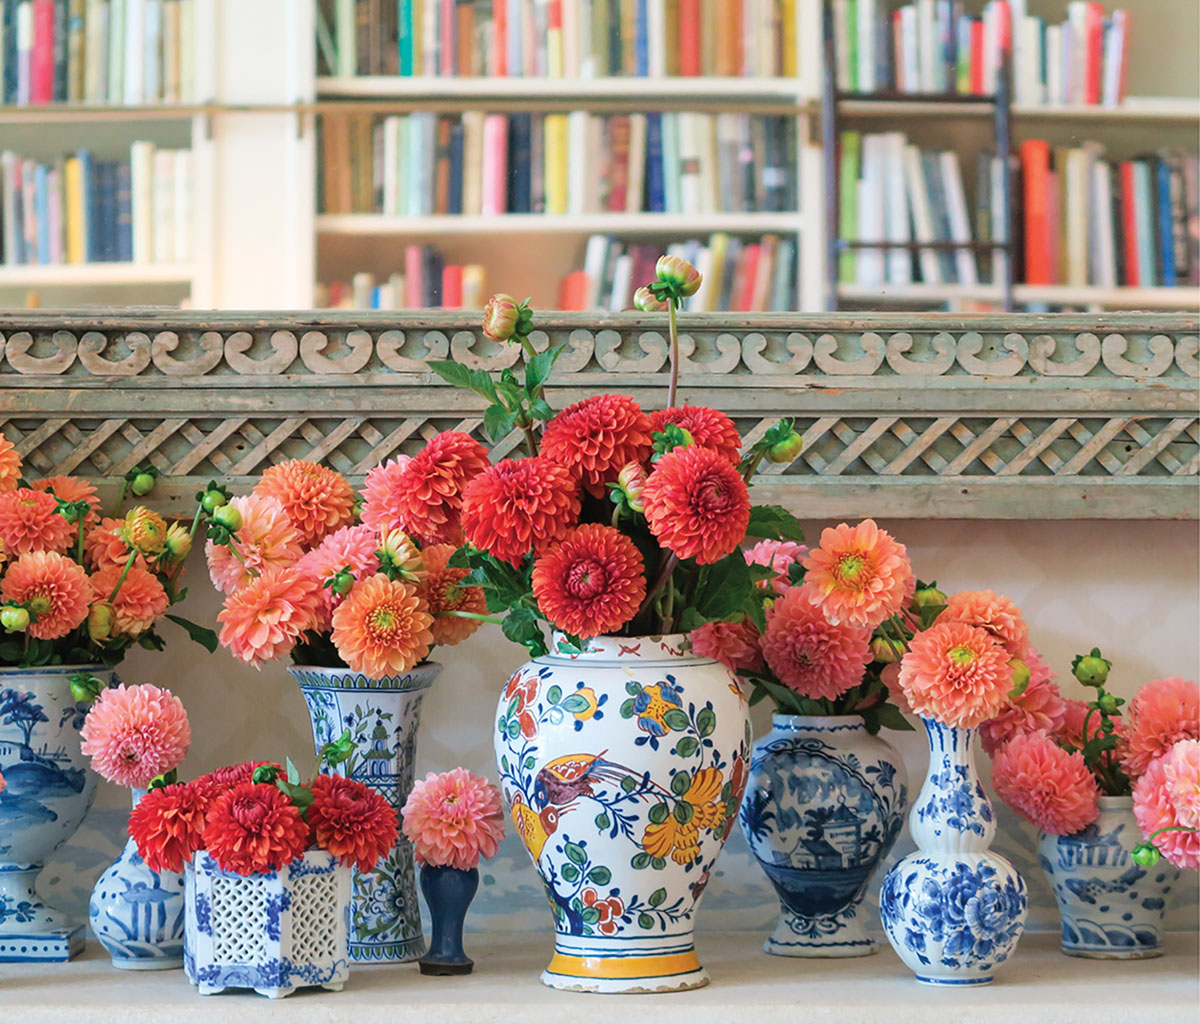 An assortment of blue-and-white chinoiserie vessels filled with dahlia blooms ranging from coral to red